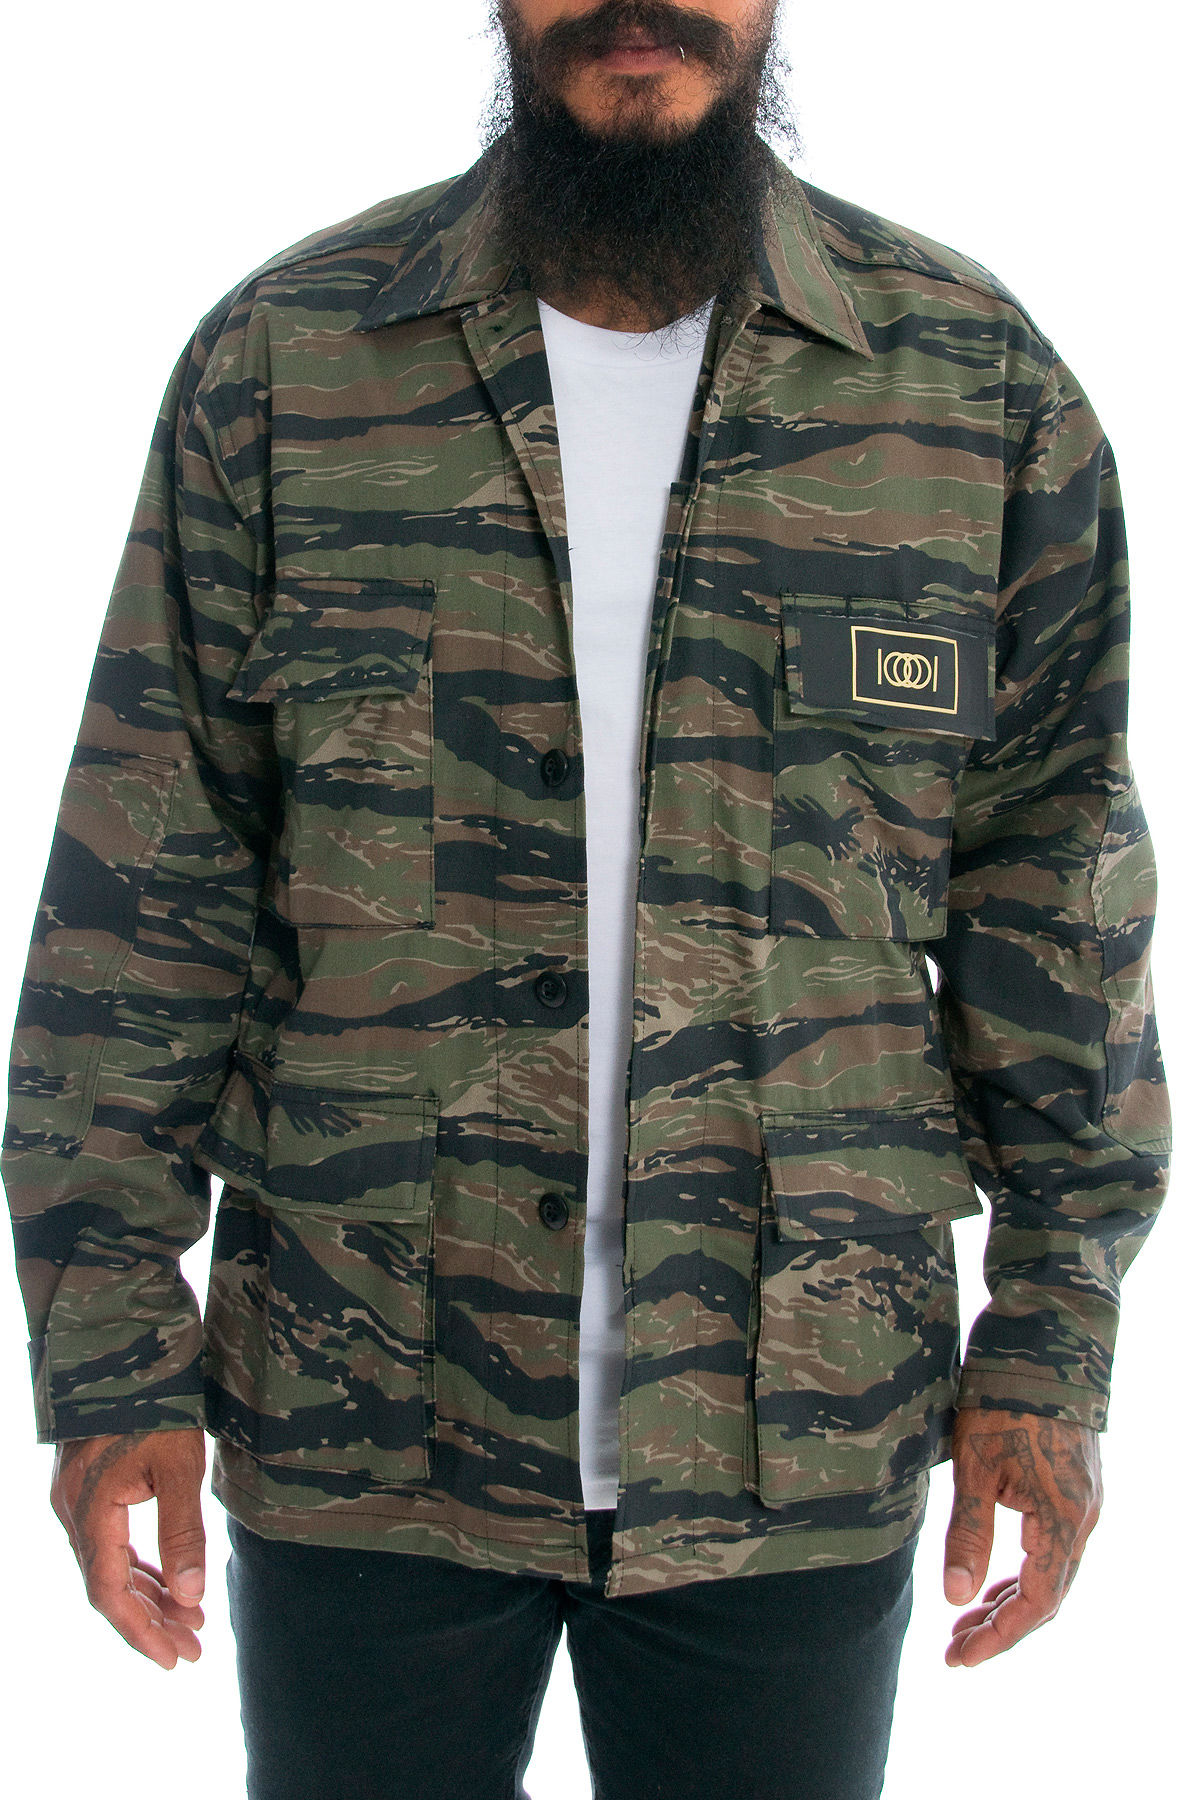 The Whatever BDU Jacket